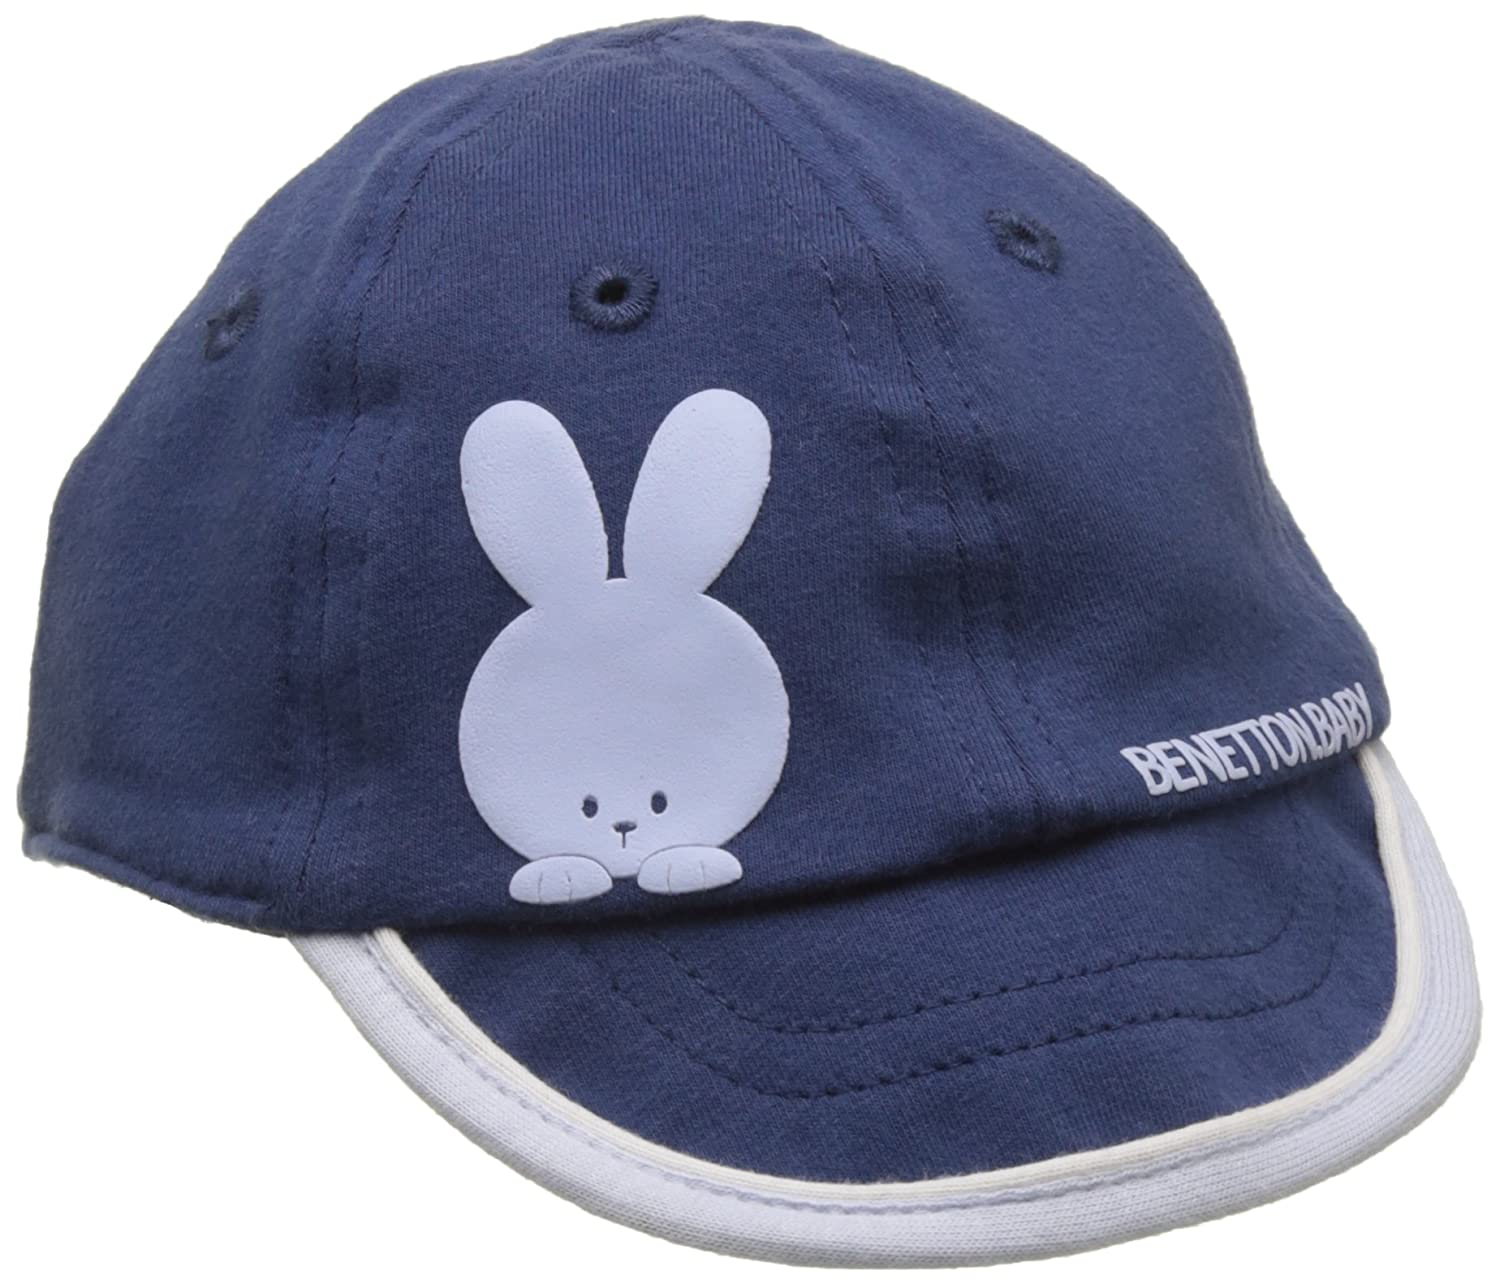 United Colors of Benetton Baby Boys 0-24m Cap Visor, Blue (Navy), 9-12  Months (Size 74)  Amazon.co.uk  Clothing 52a94bf609f